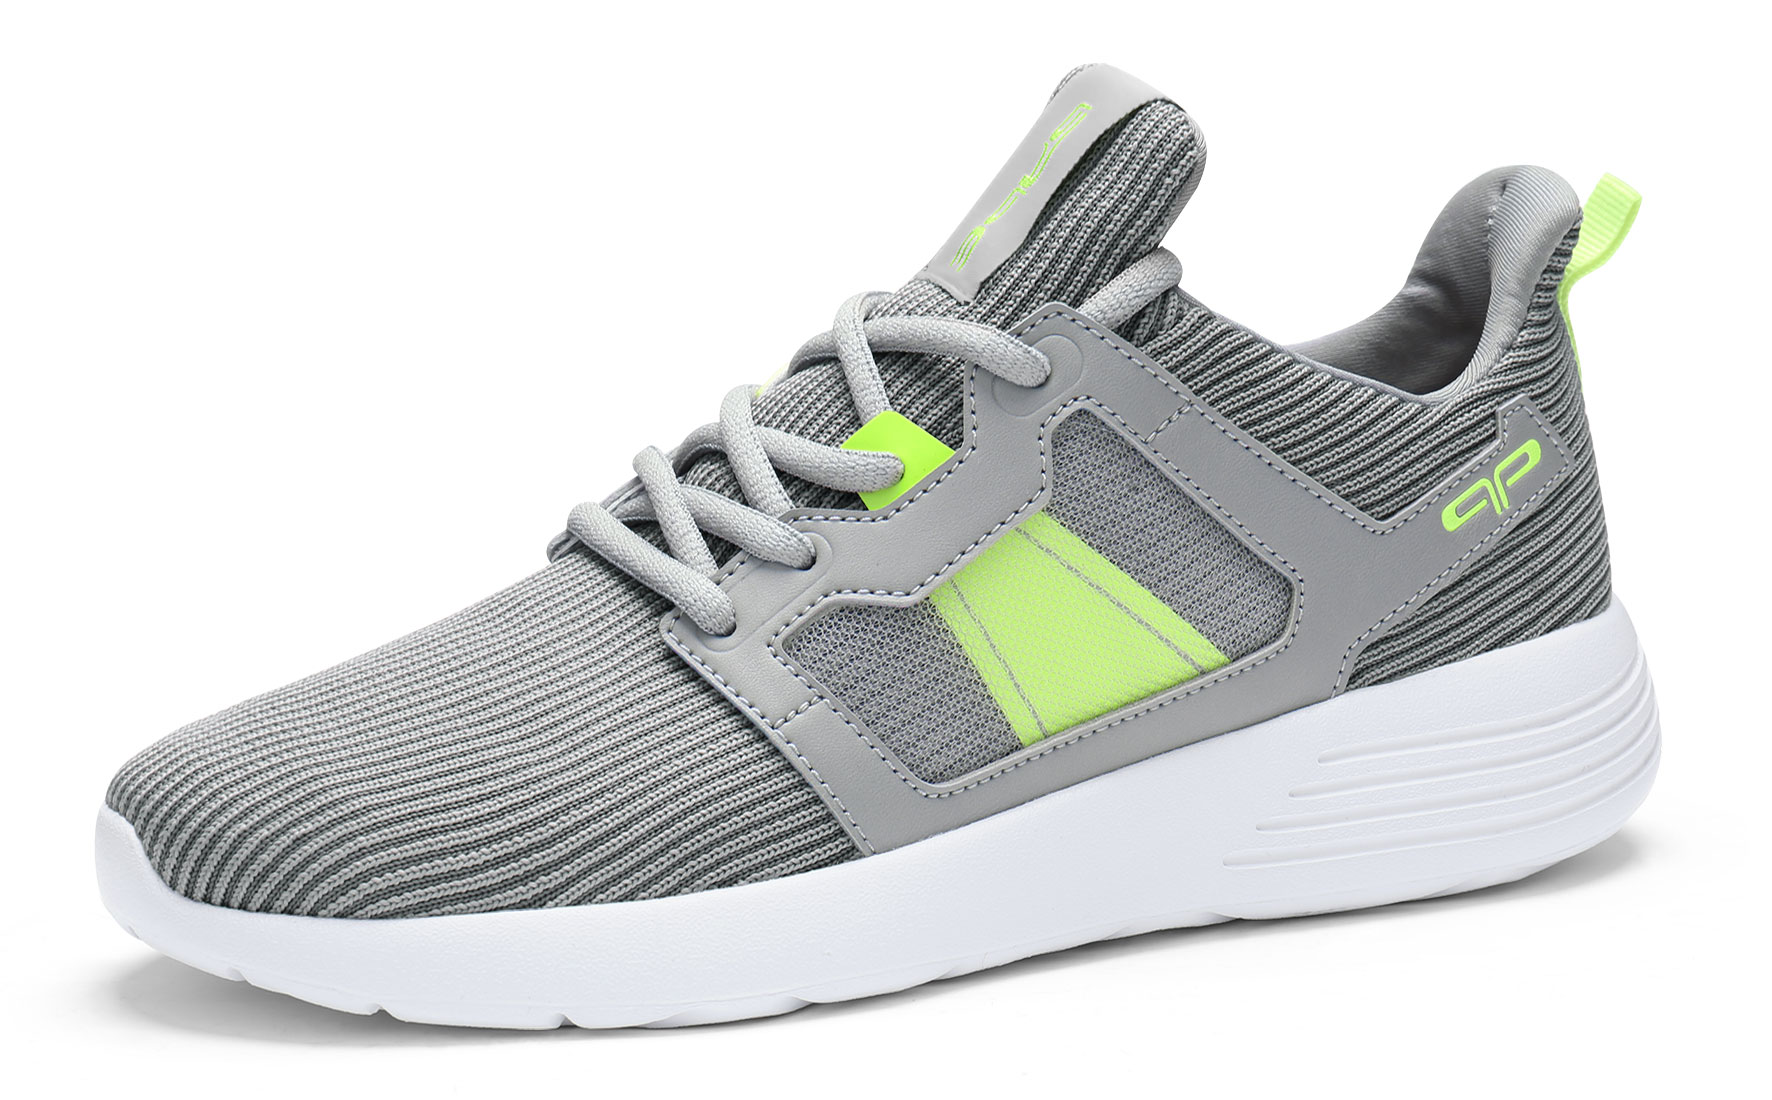 PYPE Women Lightweight Lace Up Mesh Training Sneakers Gray US 11